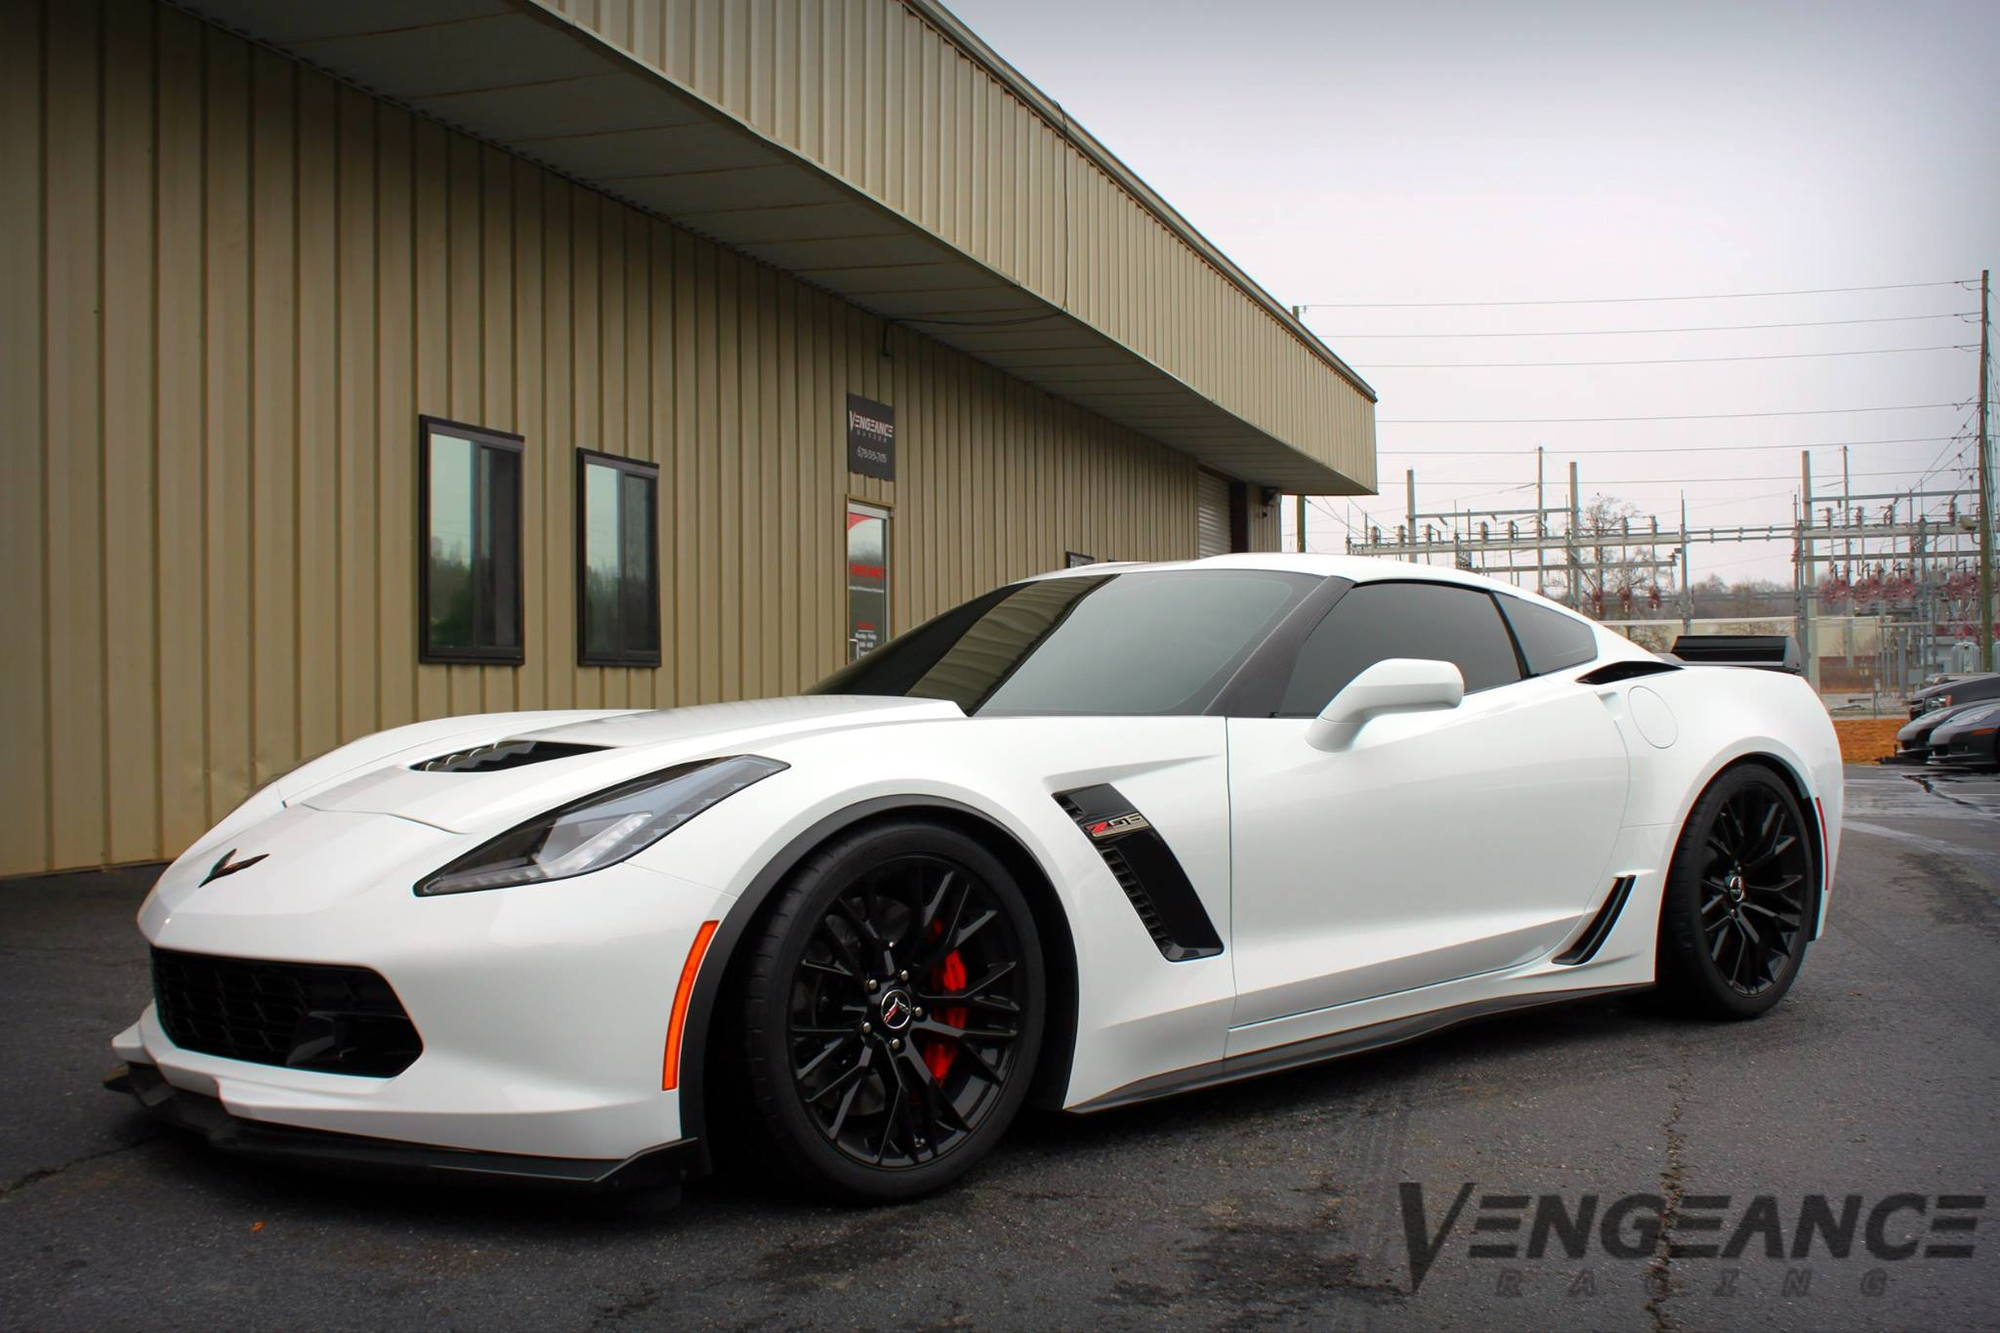 vengeance racing c7 z06 puts down 660 rwhp 660 rwtq. Black Bedroom Furniture Sets. Home Design Ideas